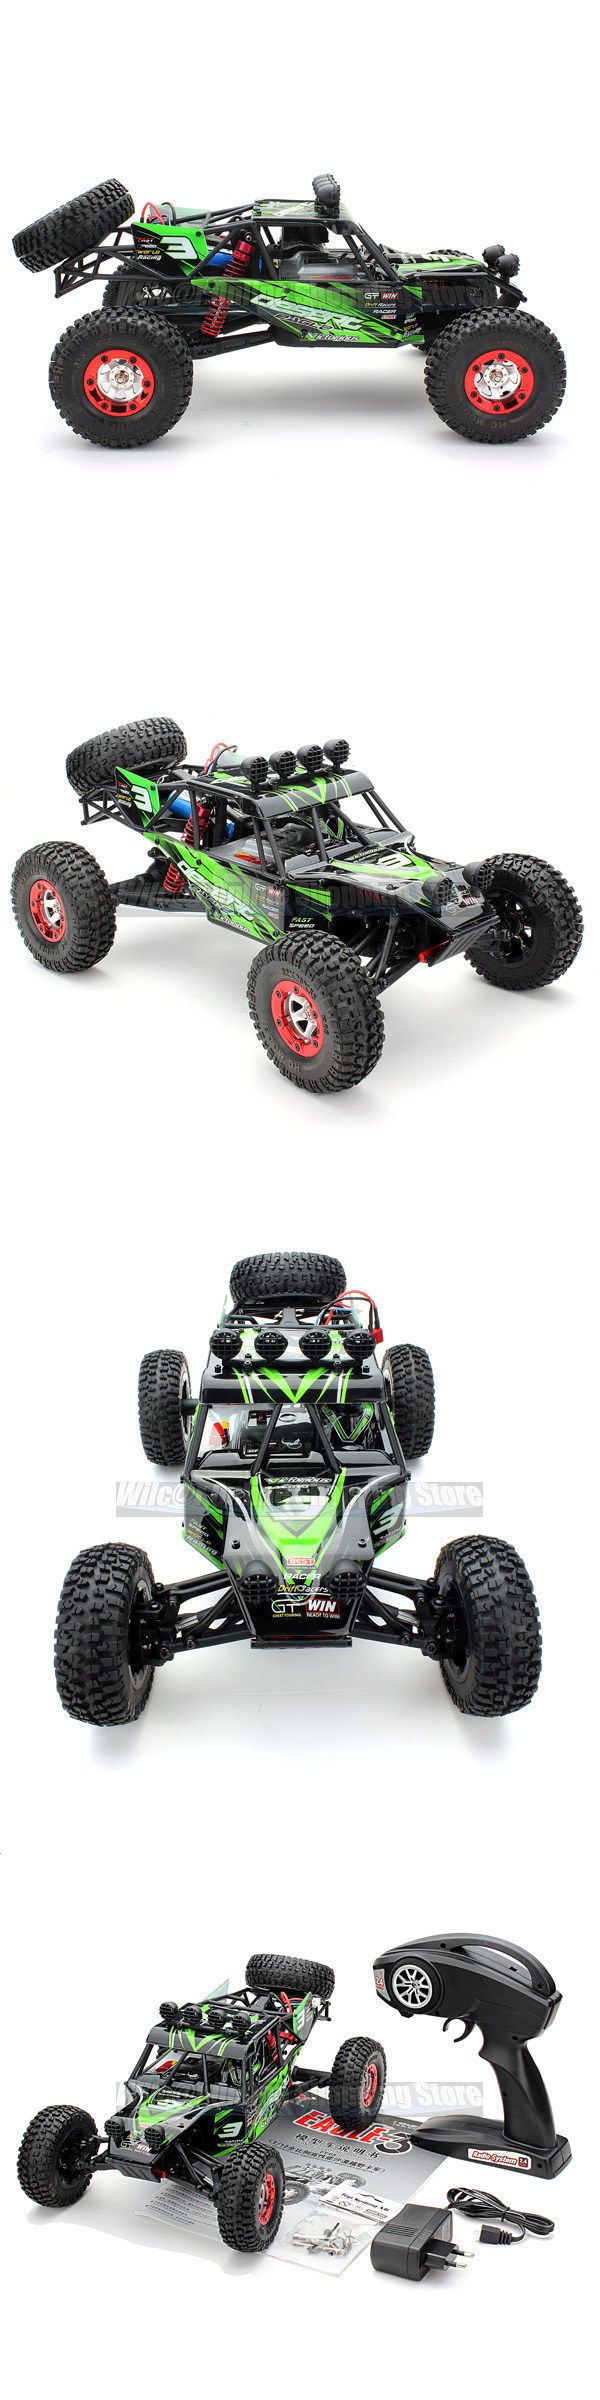 Cars Trucks and Motorcycles 182183: New Rc Desert Off Road Truck Car Buggy 4X4 Electric 1 12 Jeep Style Drift Racing -> BUY IT NOW ONLY: $116.99 on eBay!